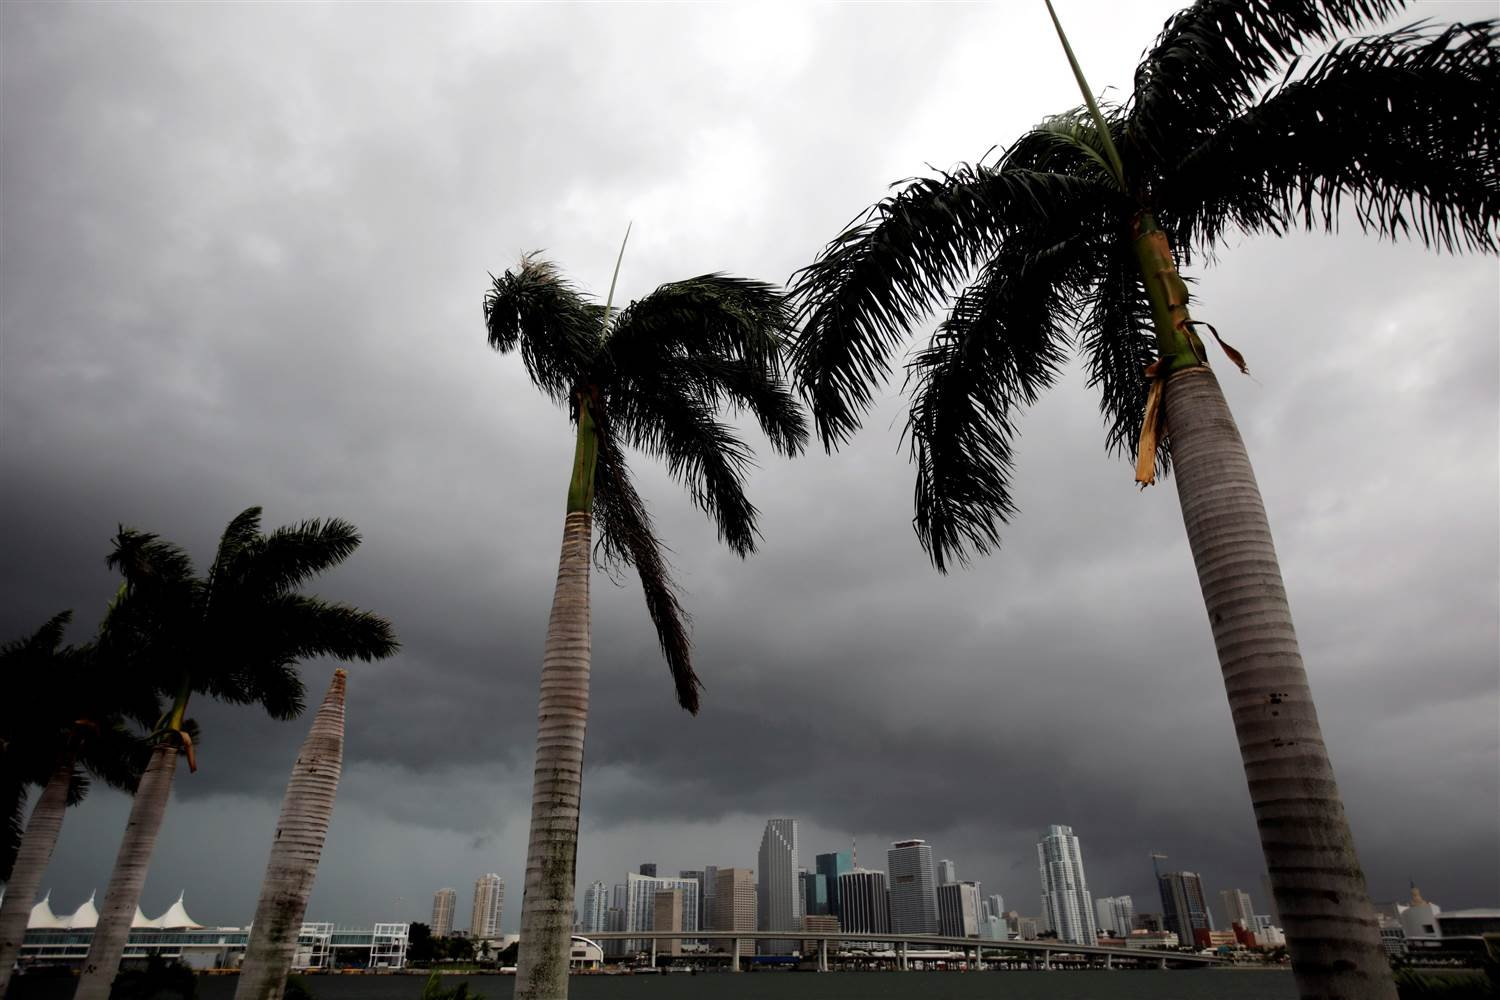 Dark clouds are seen over Miami's skyline prior to the arrival of Hurricane Irma to south Florida, U.S. Saturday. (CARLOS BARRIA / Reuters)